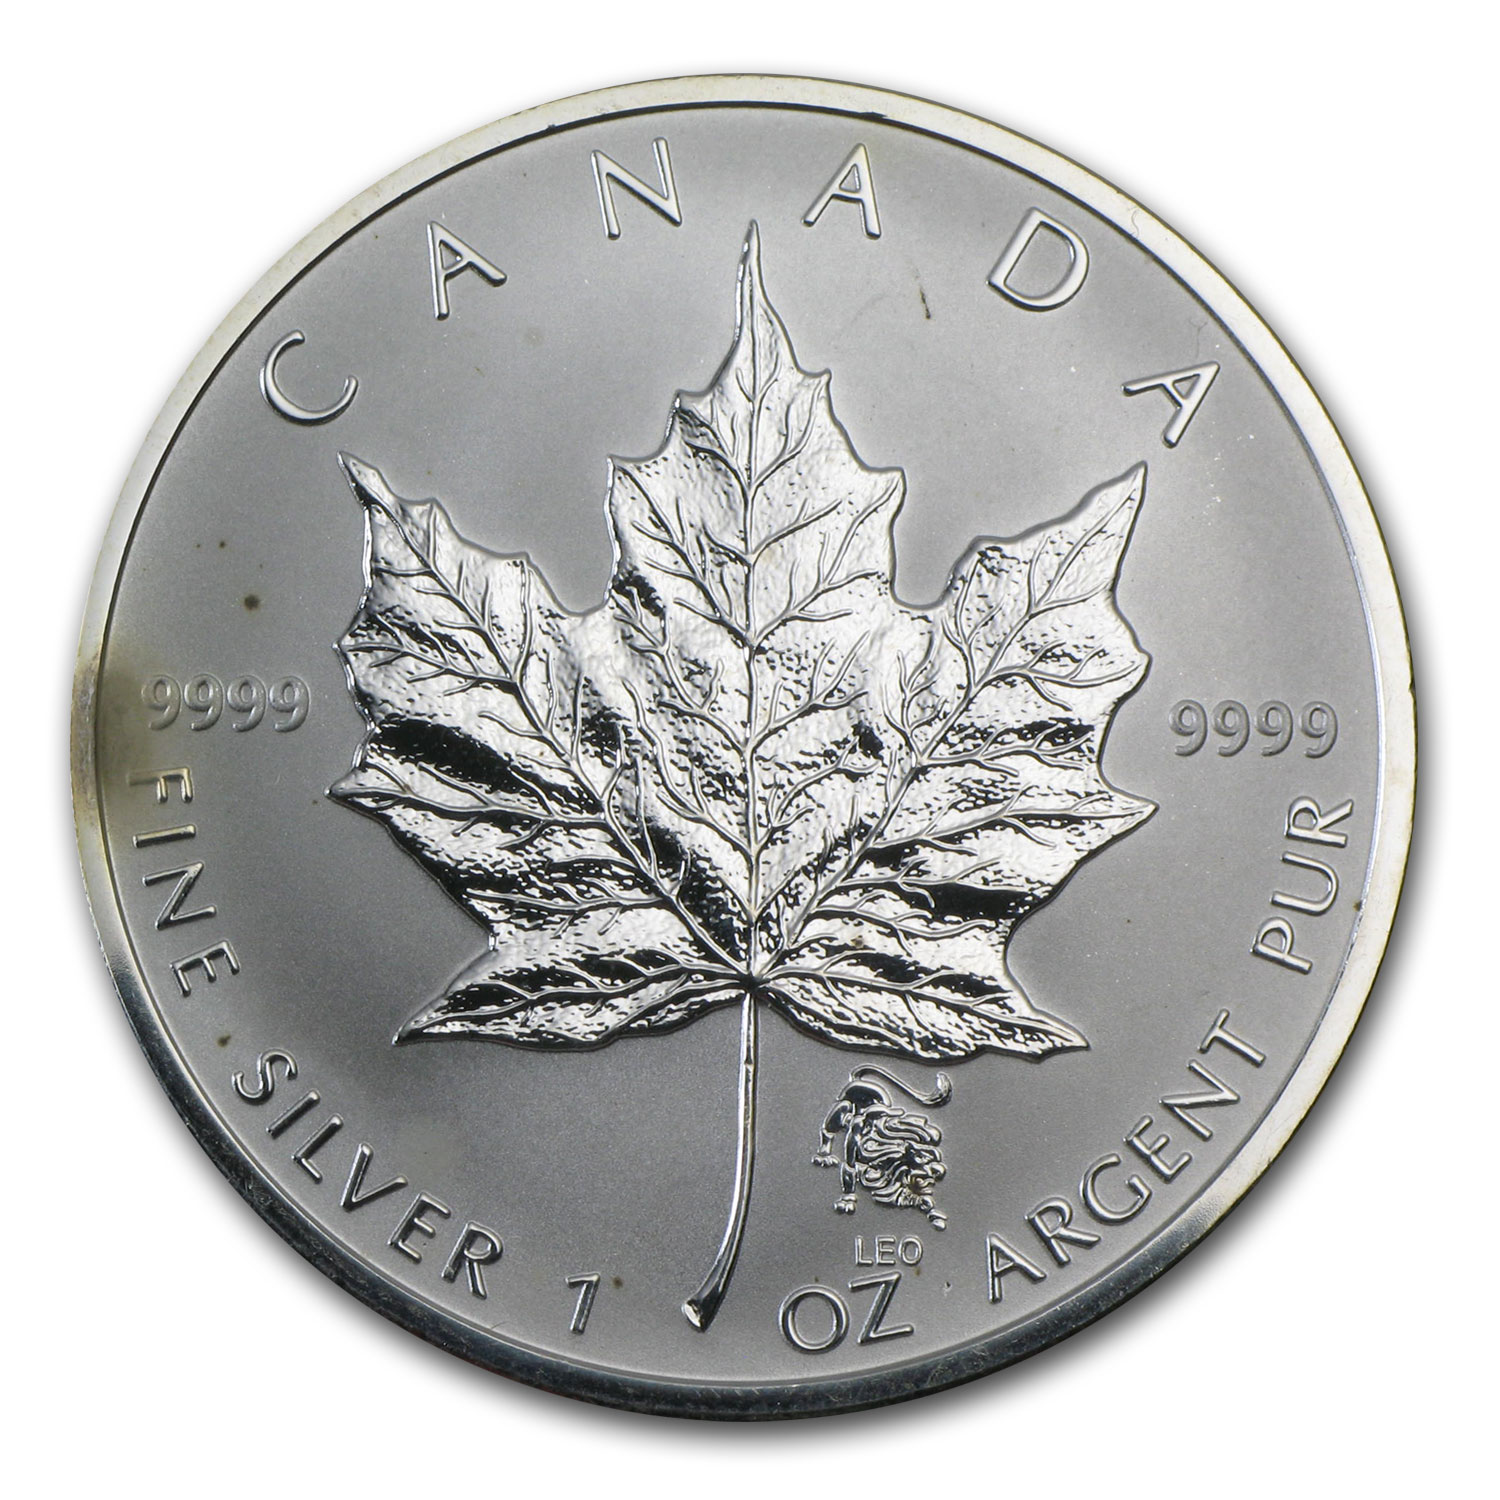 Canadian 1 oz Silver Maple Leaf Privy (Abrasions, Spotted)